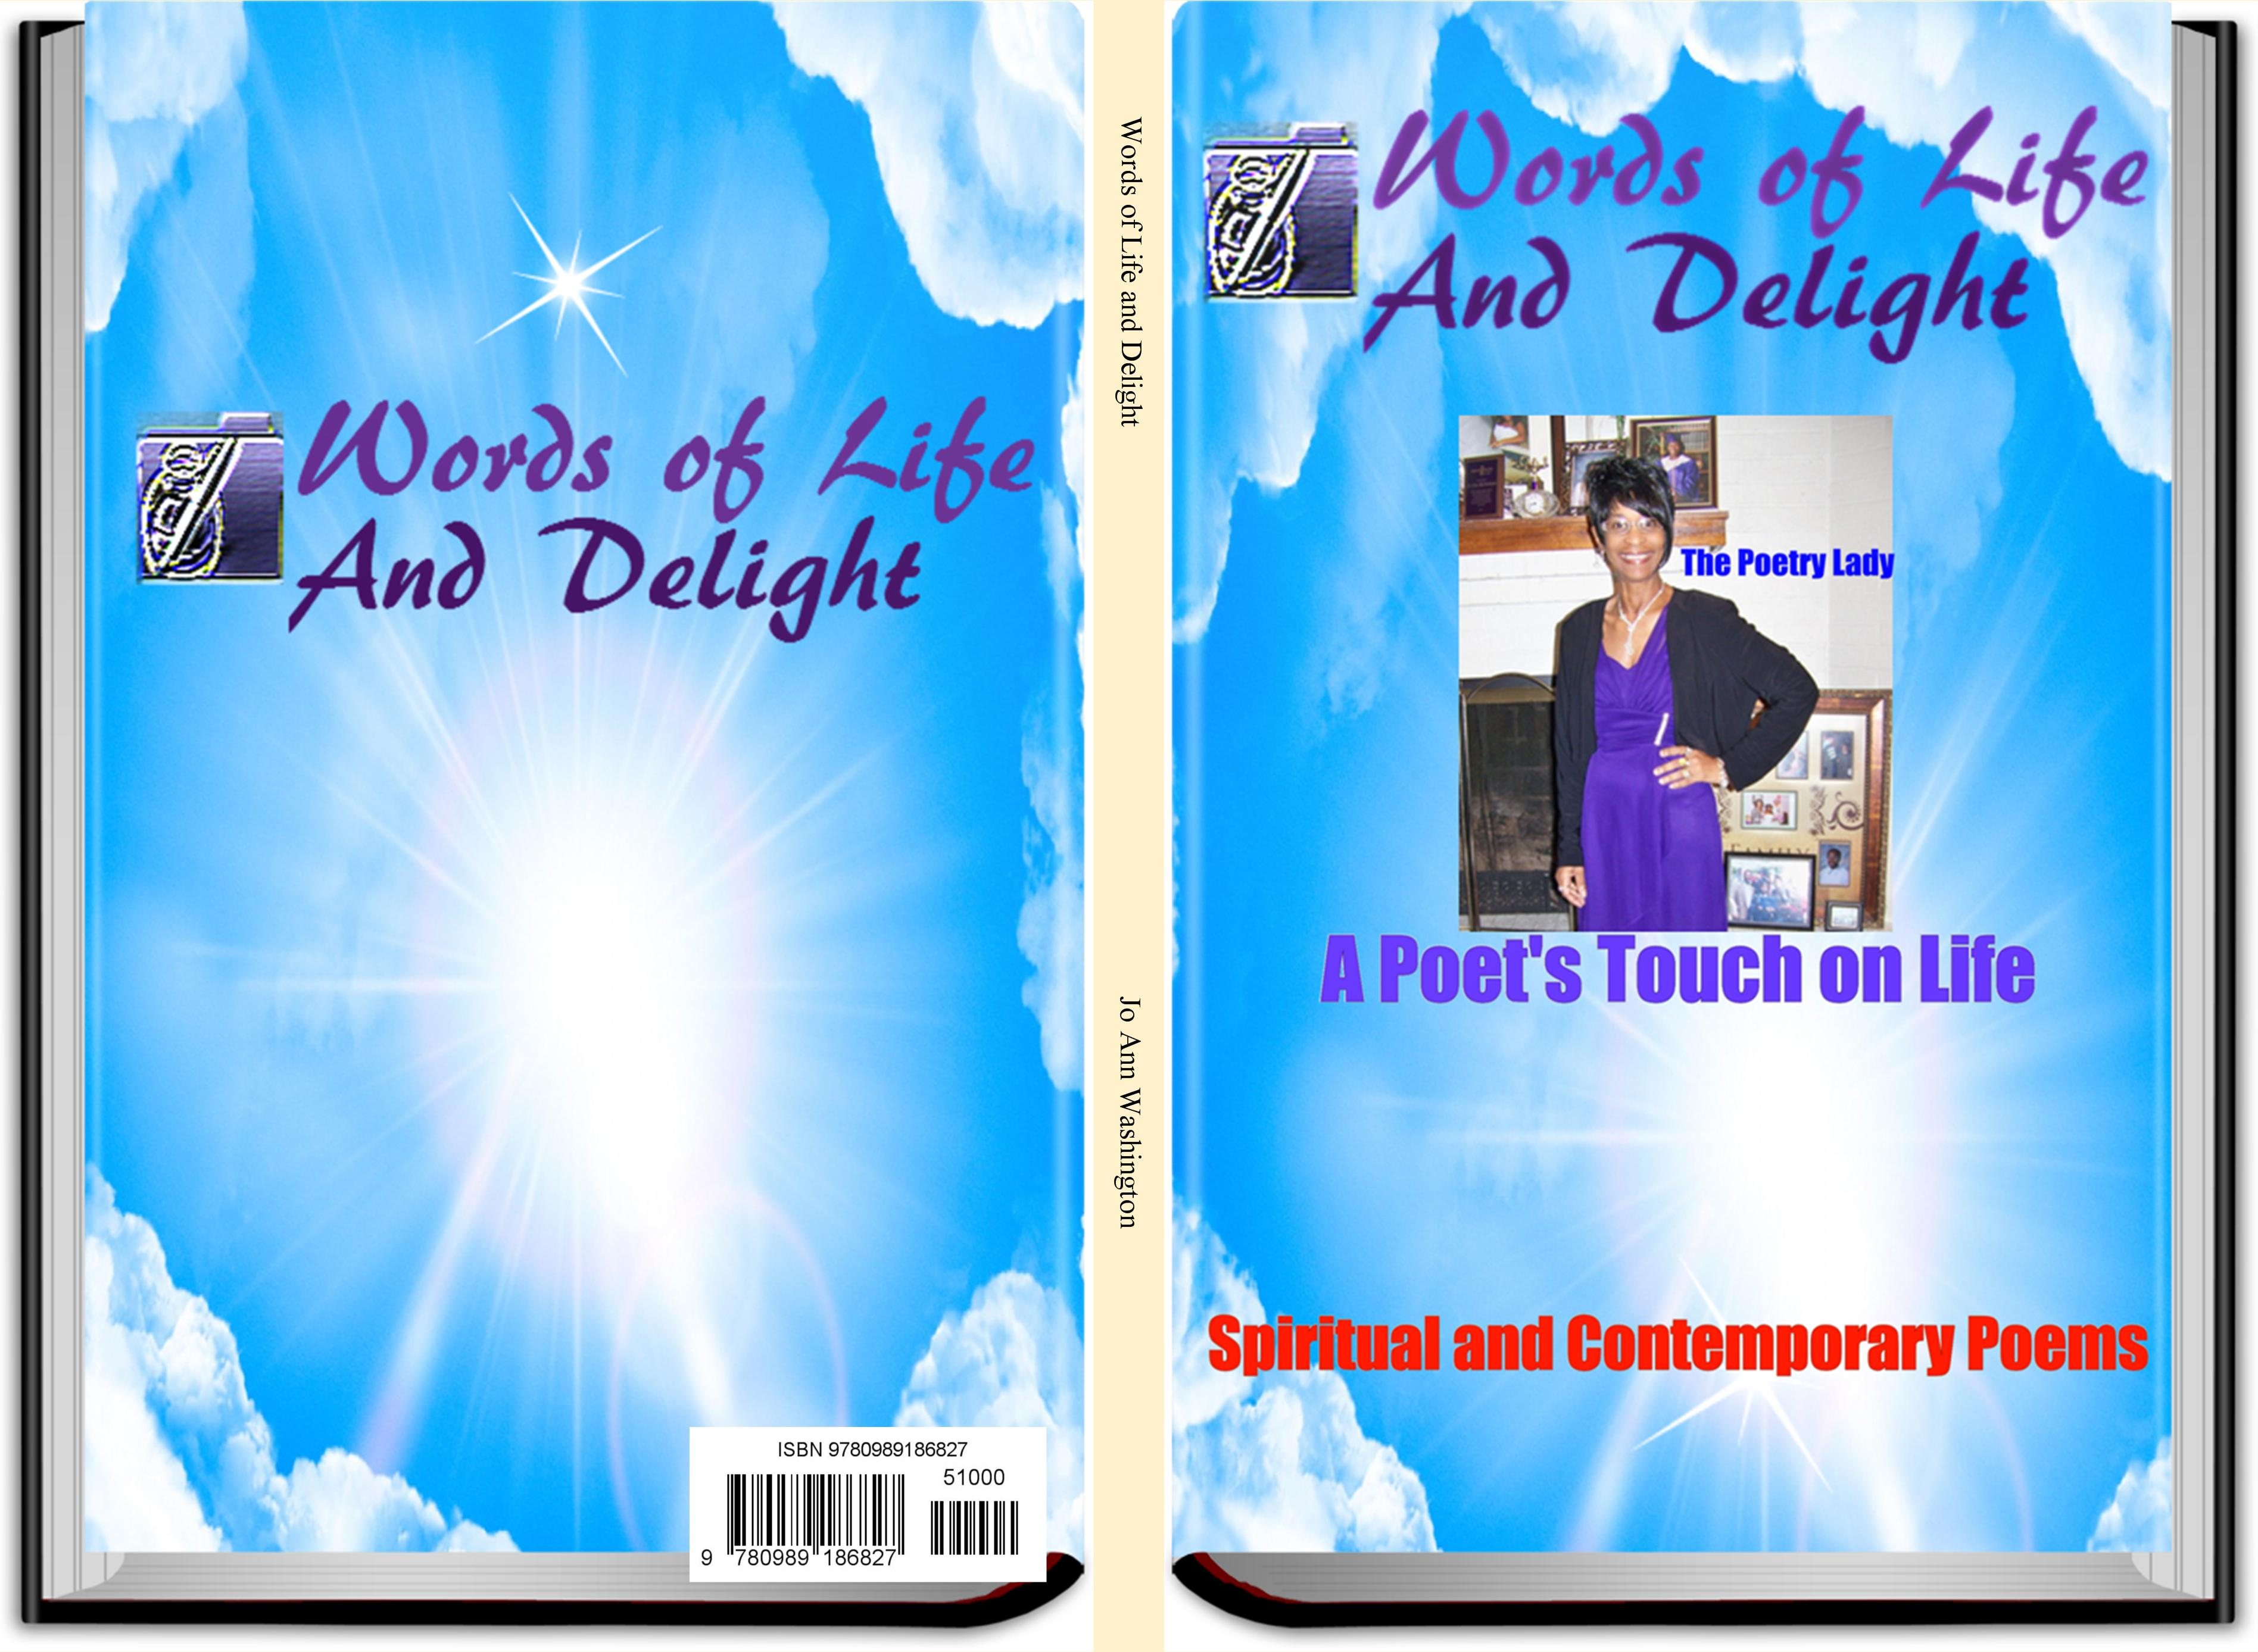 Words of Life and Delight cover image